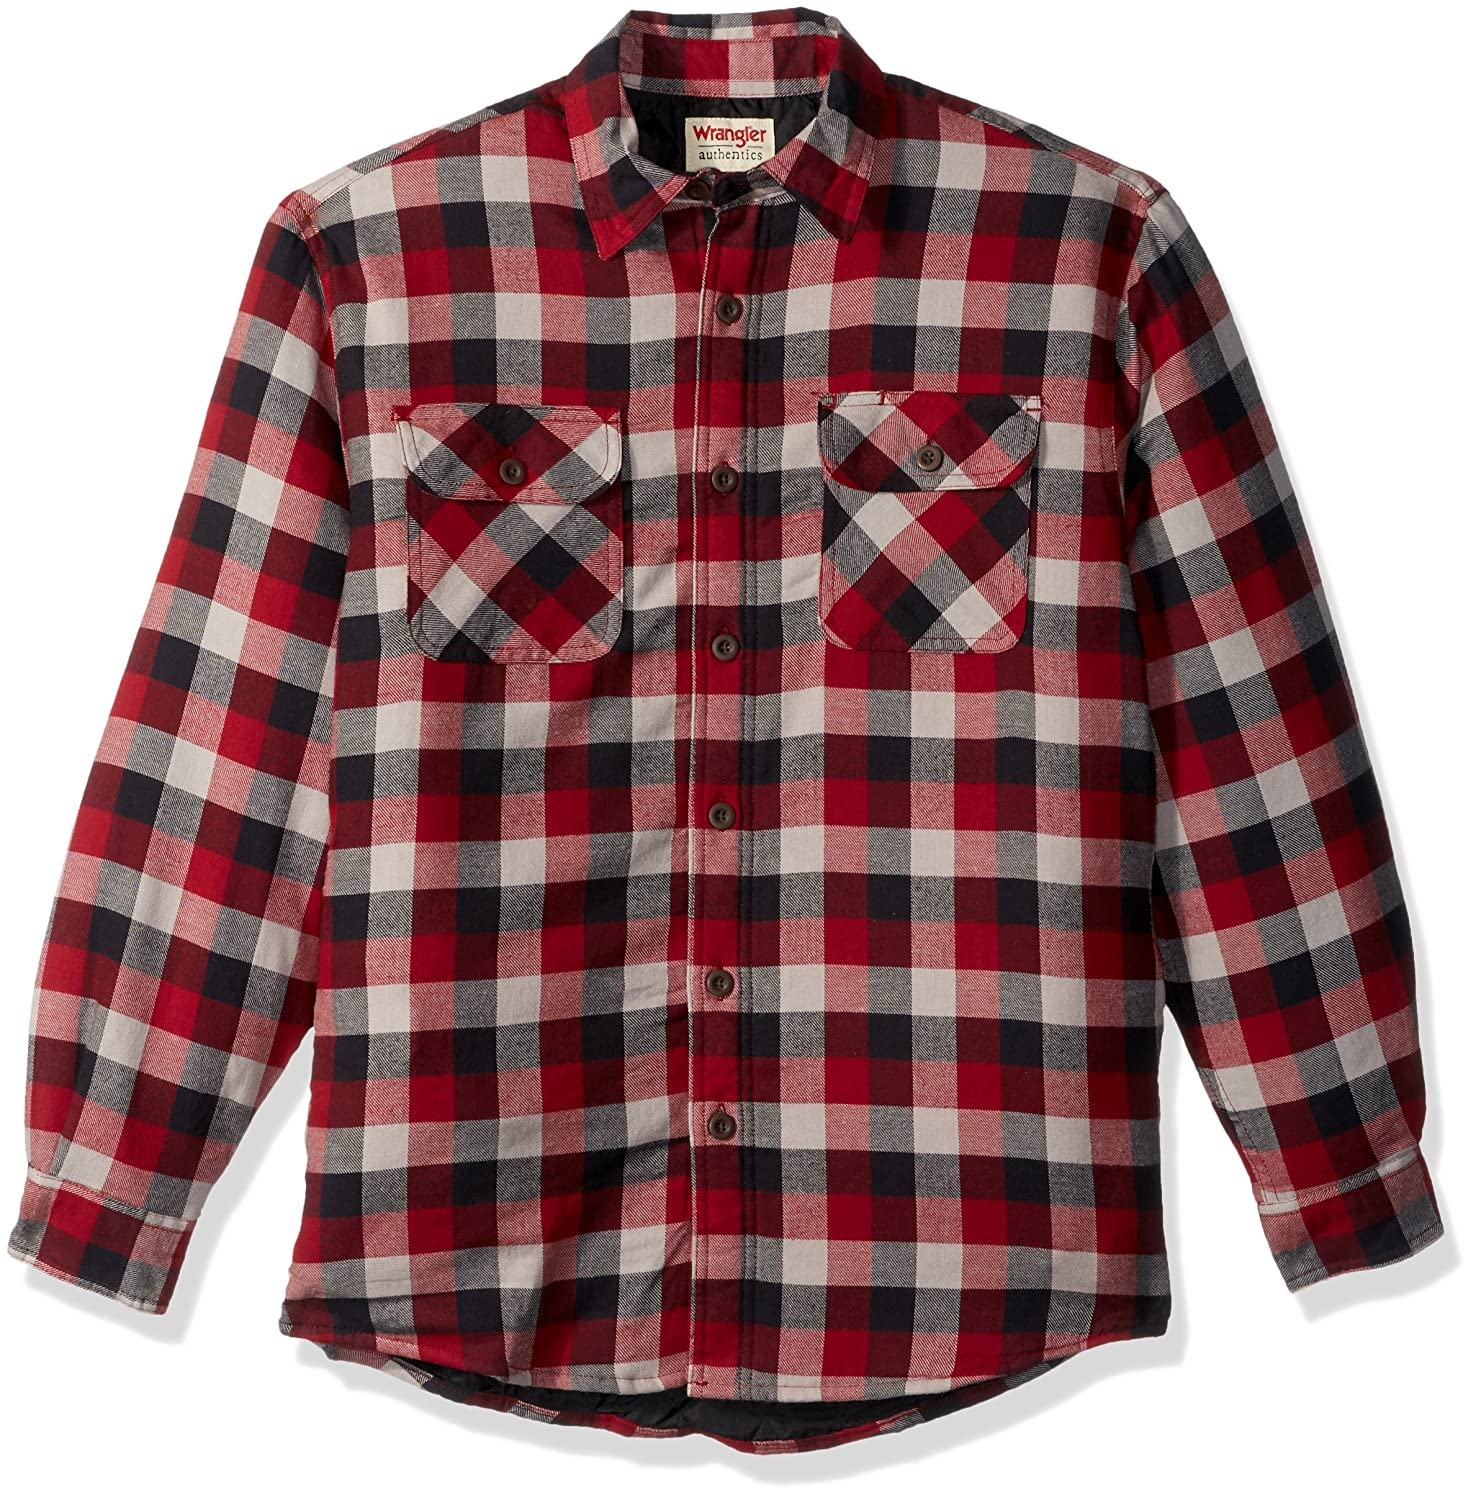 Unionbay Men/'S Long Sleeve Button-Up Flannel Shirt Jacket